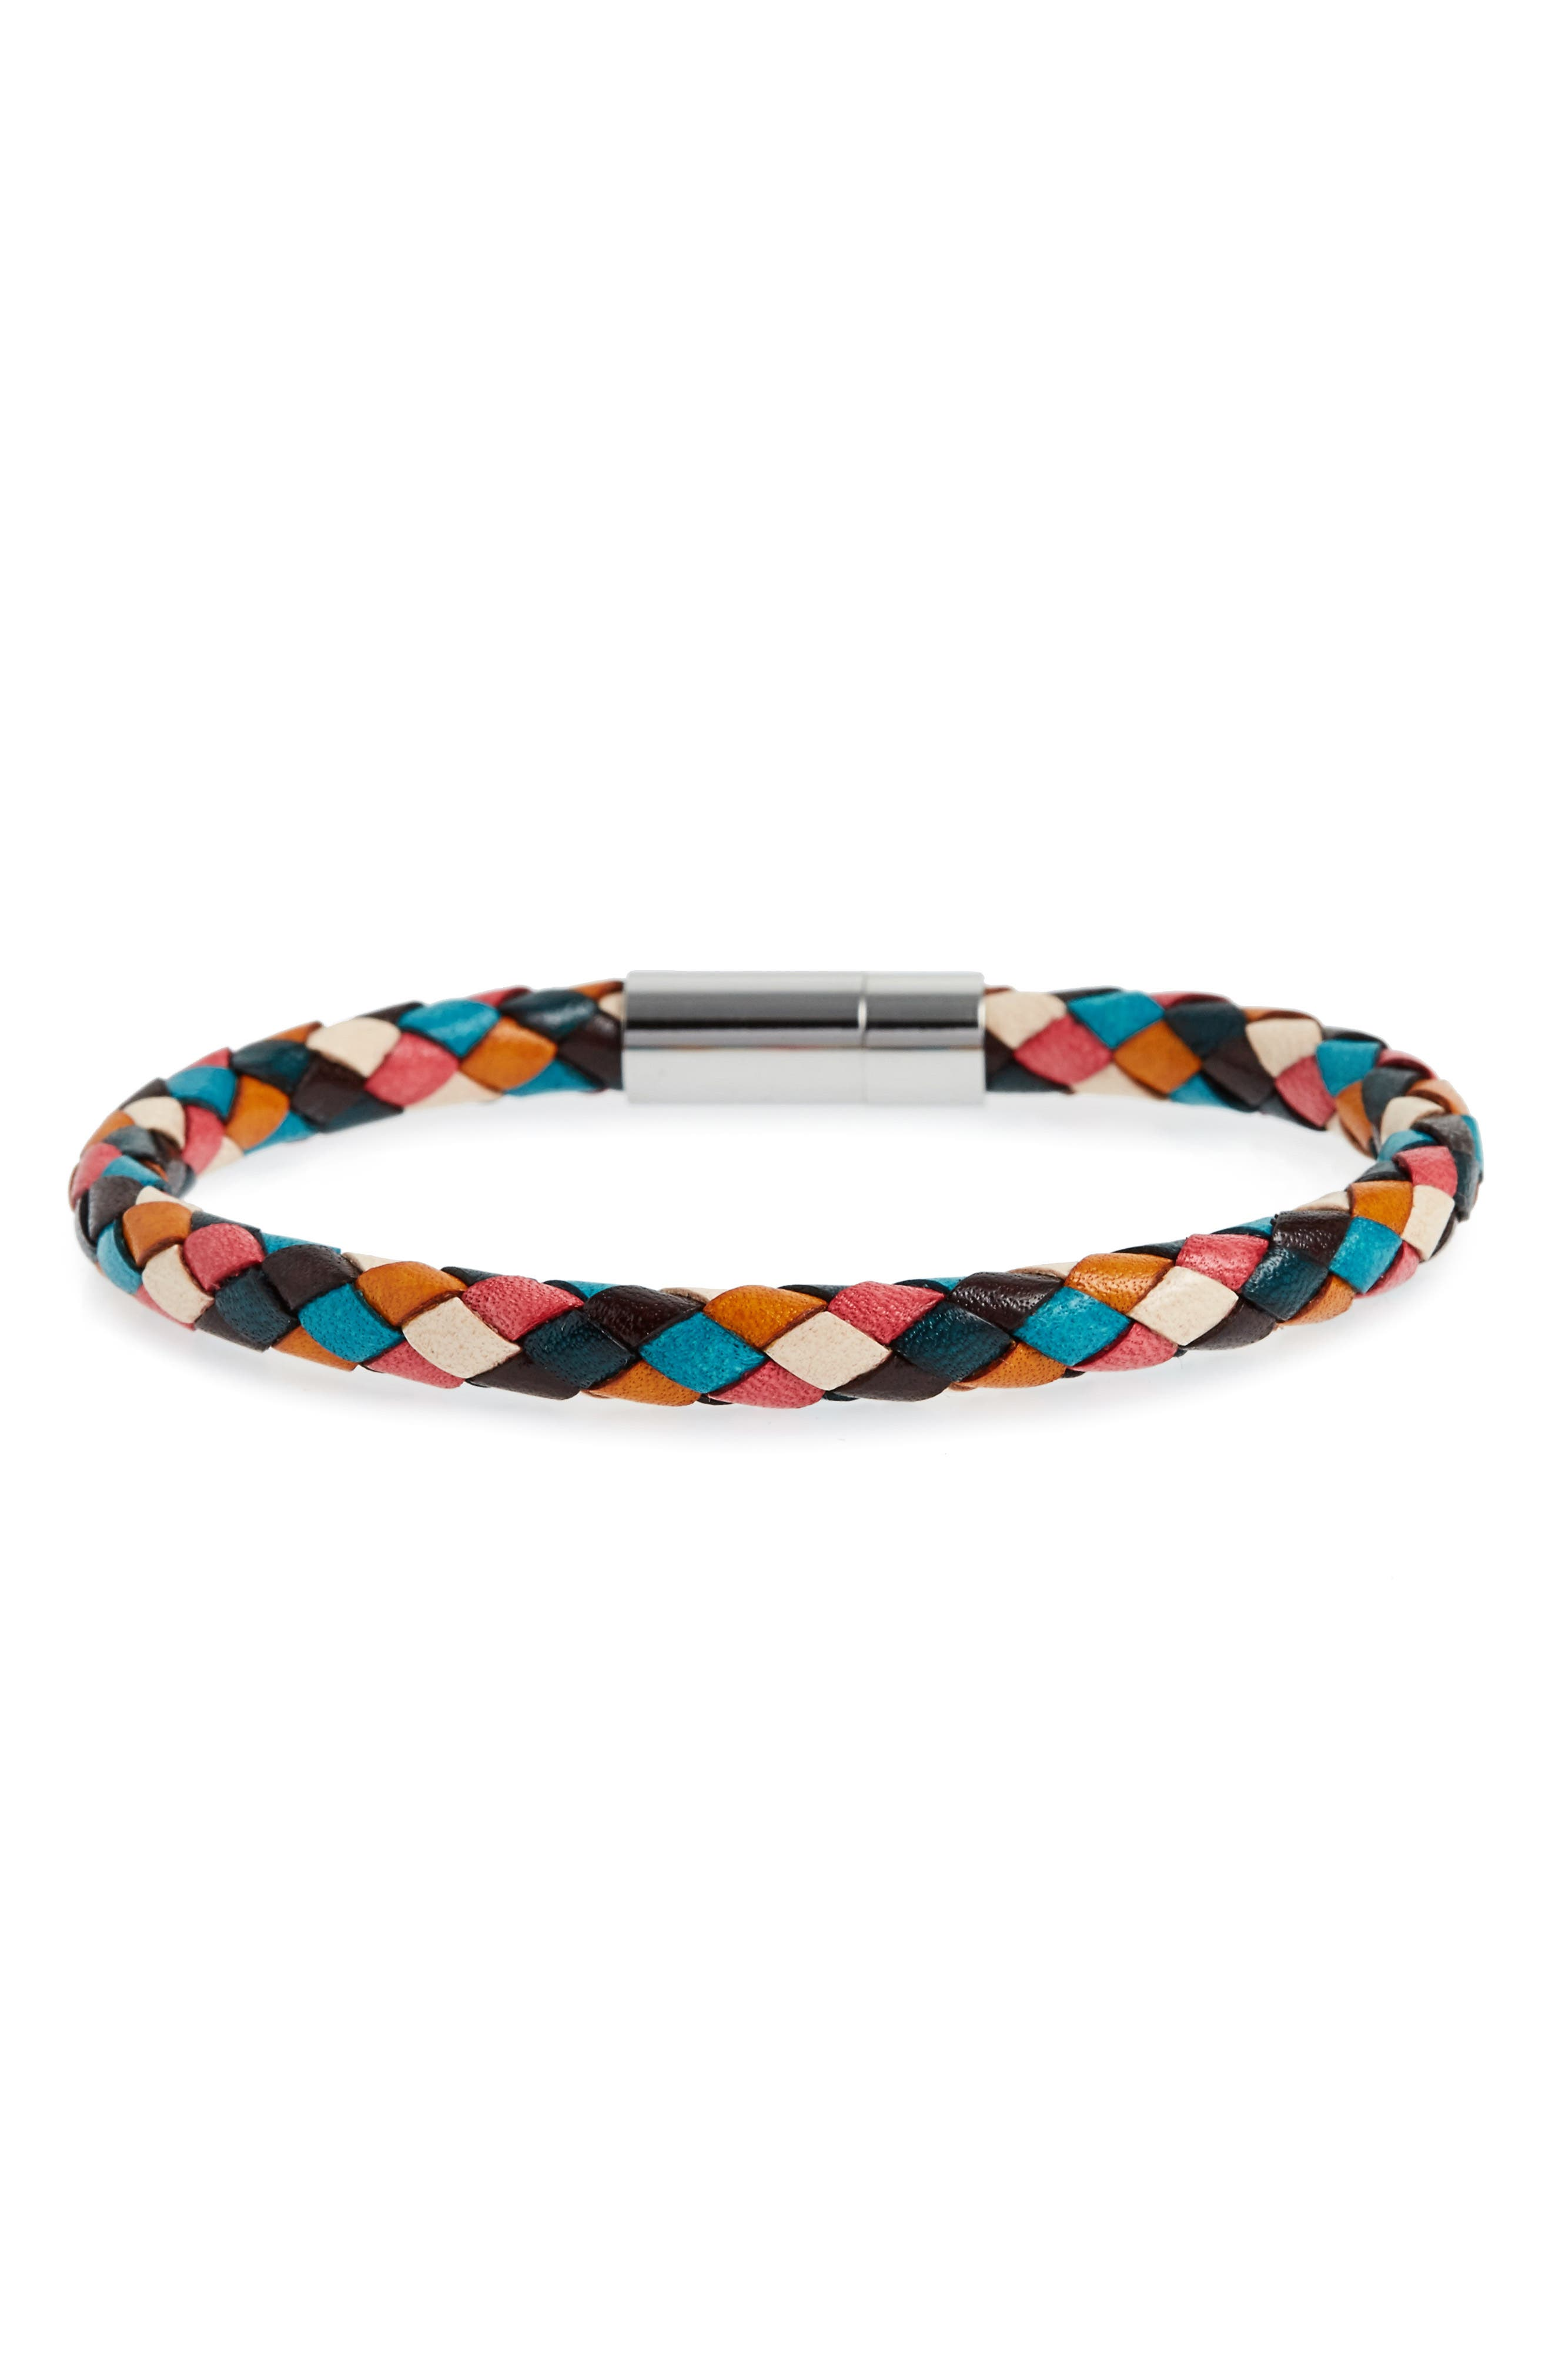 Woven Leather Bracelet,                         Main,                         color, Multi